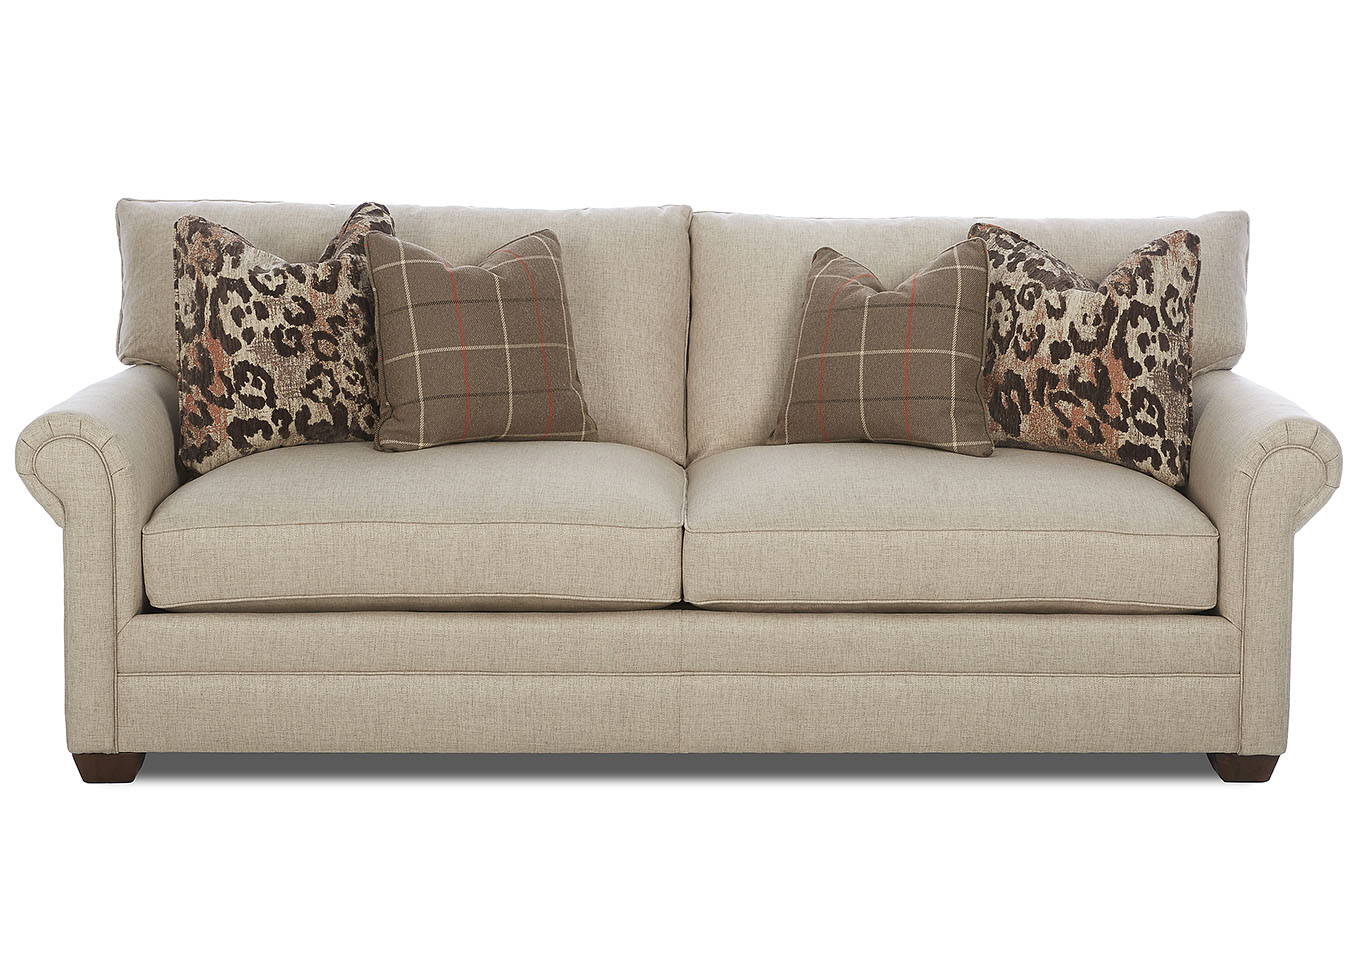 Huntley Beige Stationary Fabric Sofa,Klaussner Home Furnishings